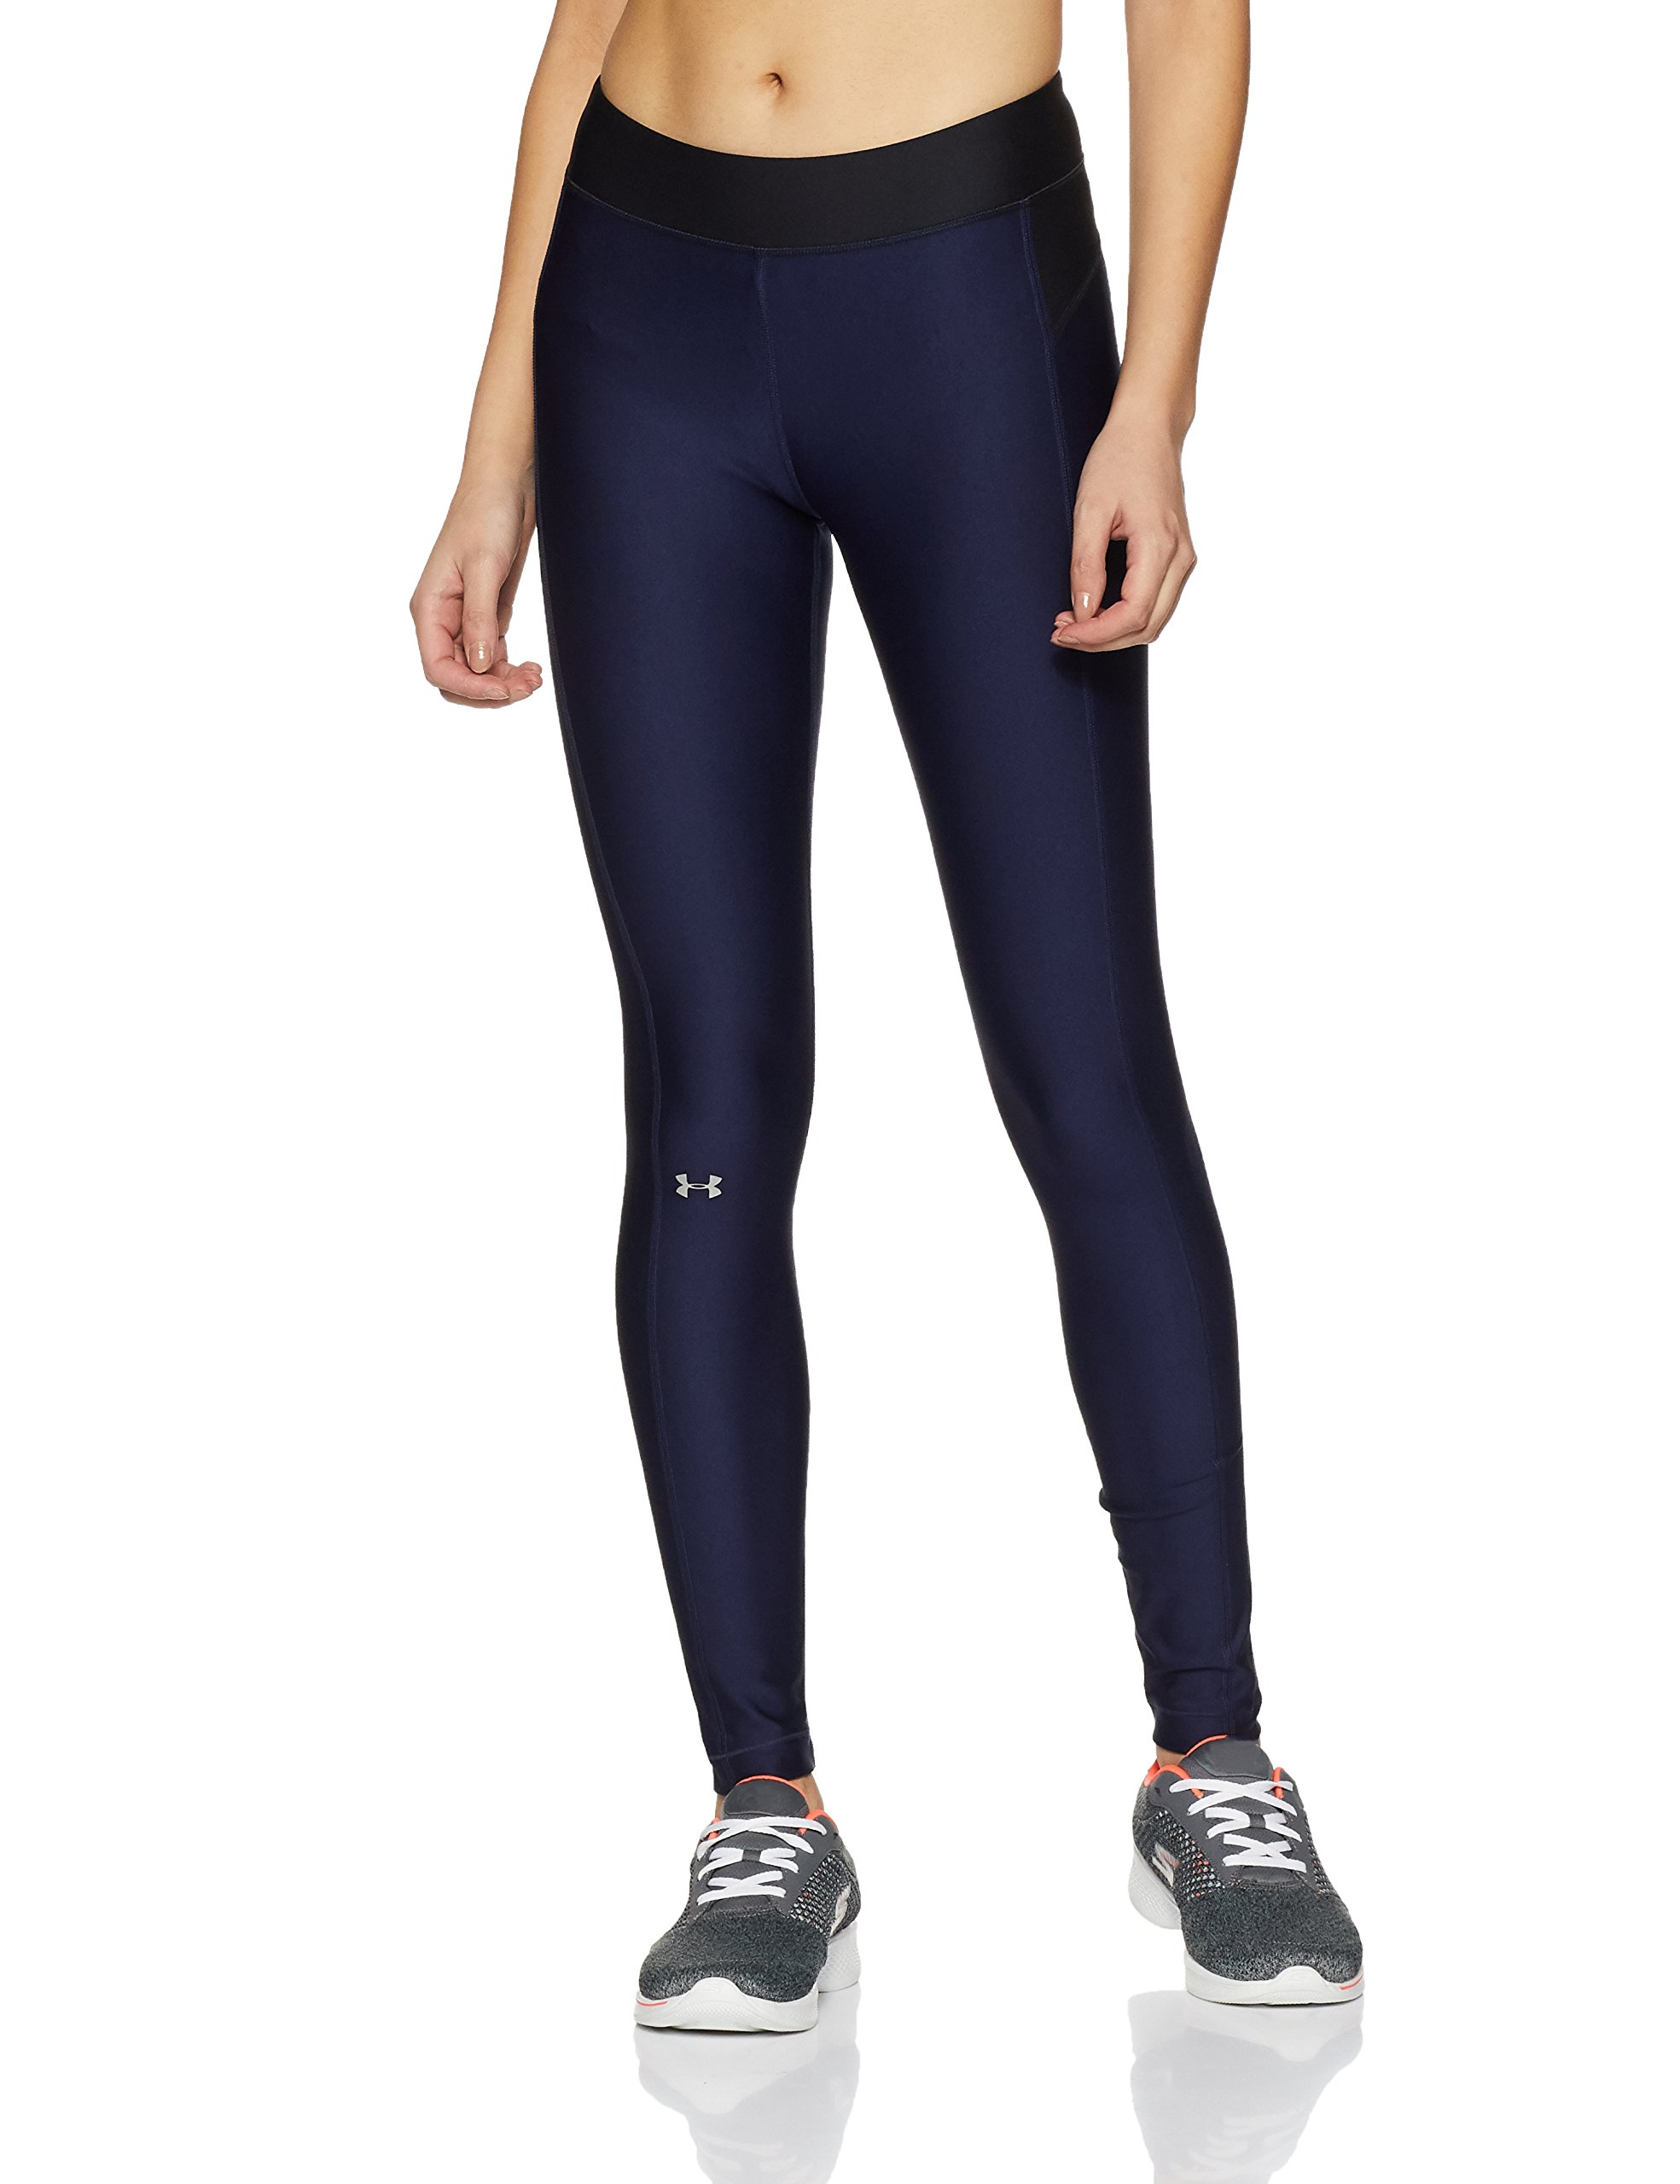 Under Armour Womens Heatgear Armour Leggings, Midnight Navy /Metallic Silver, XX-Large by Under Armour (Image #1)